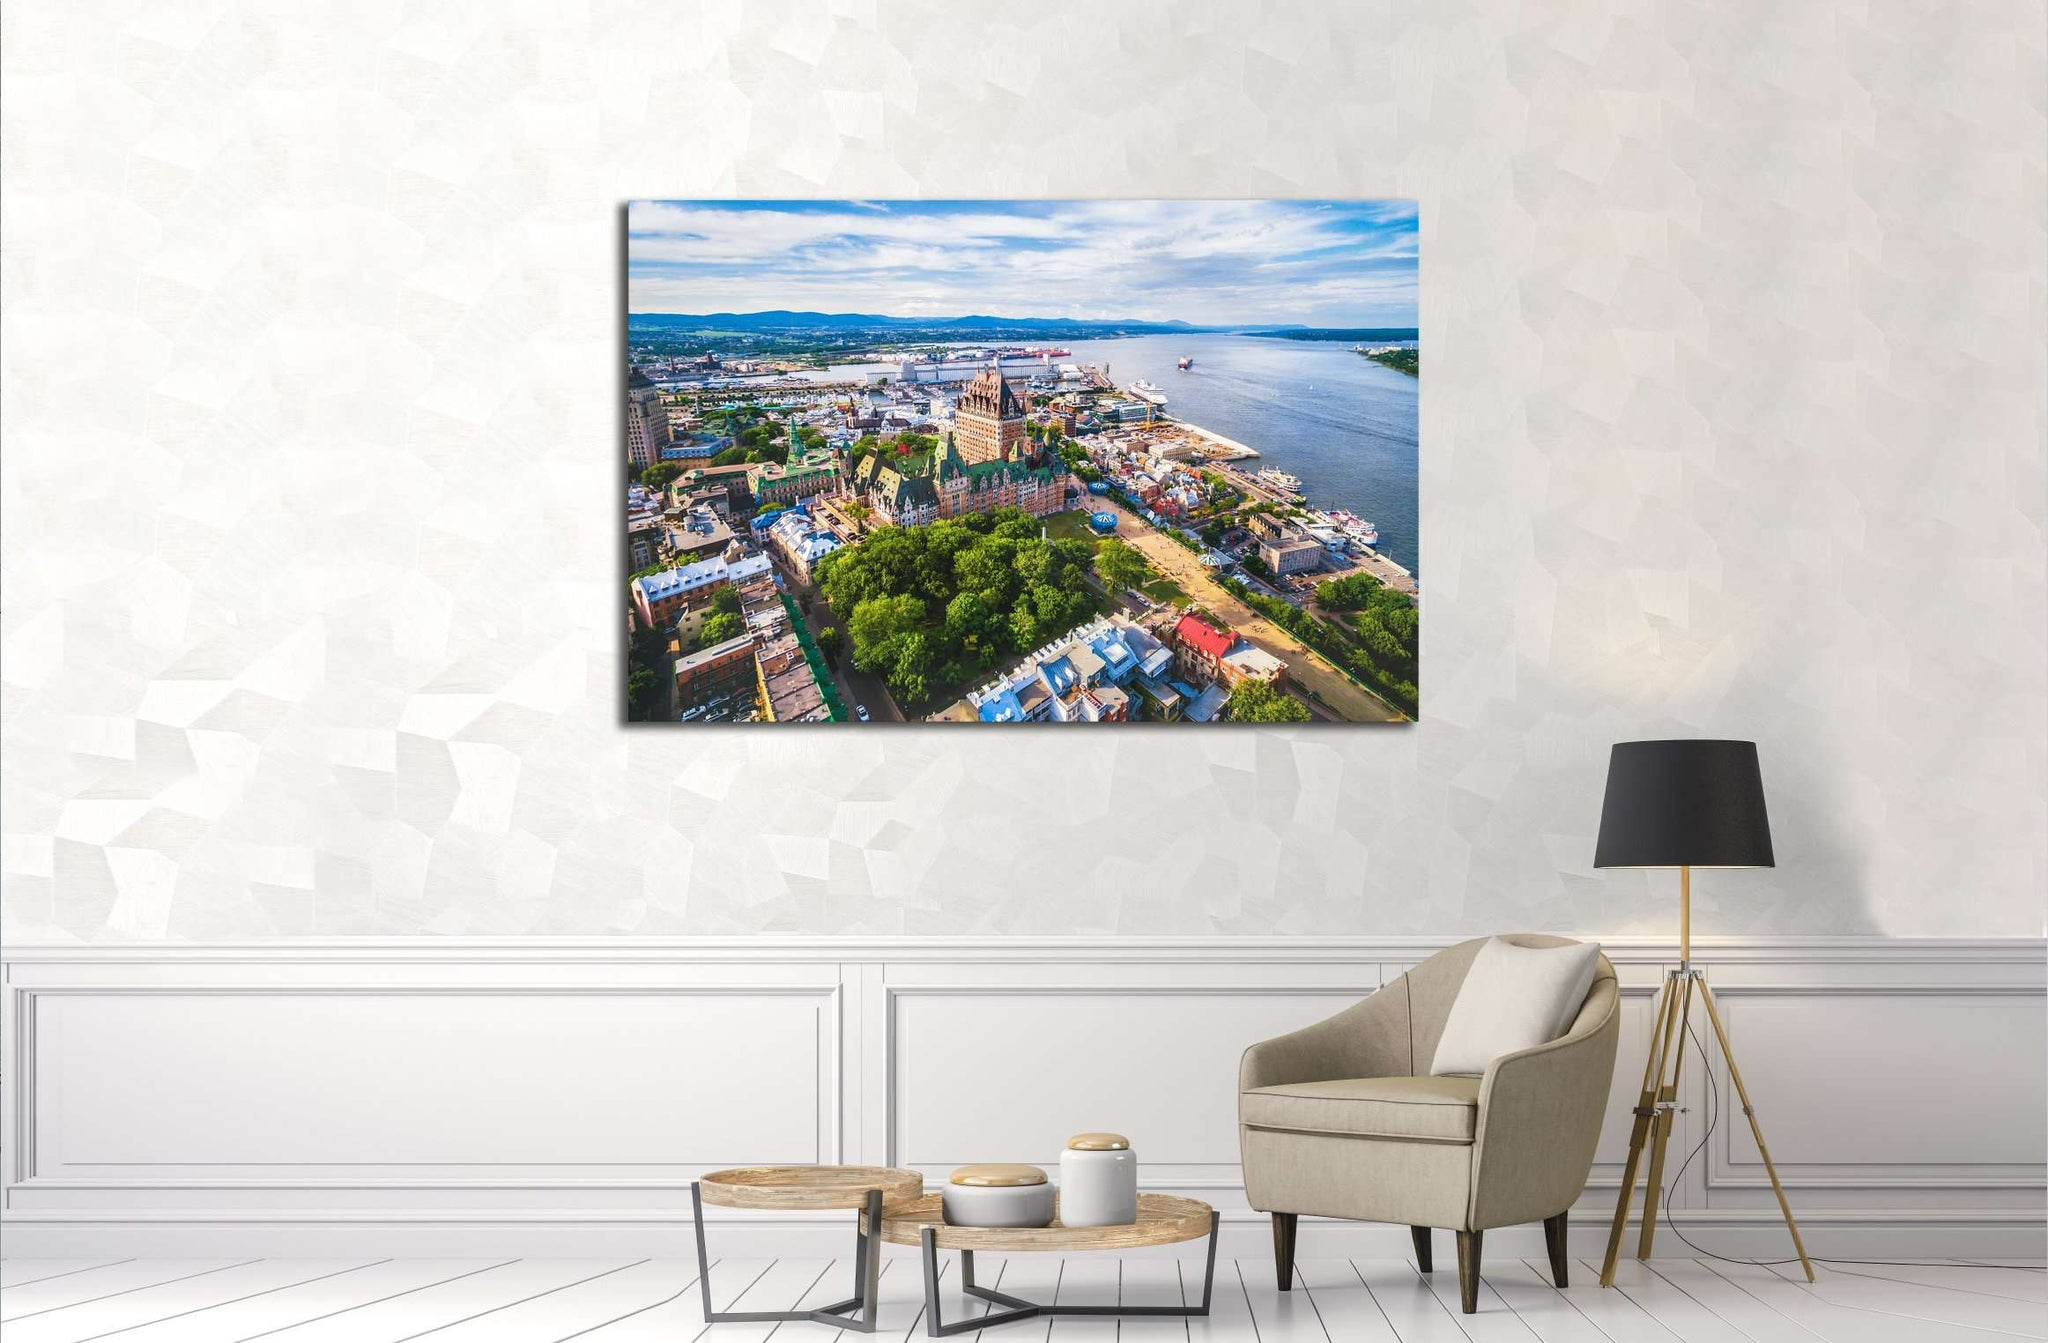 Aerial view of Chateau Frontenac hotel and Old Port in Quebec City, Canada. №2739 Ready to Hang Canvas Print